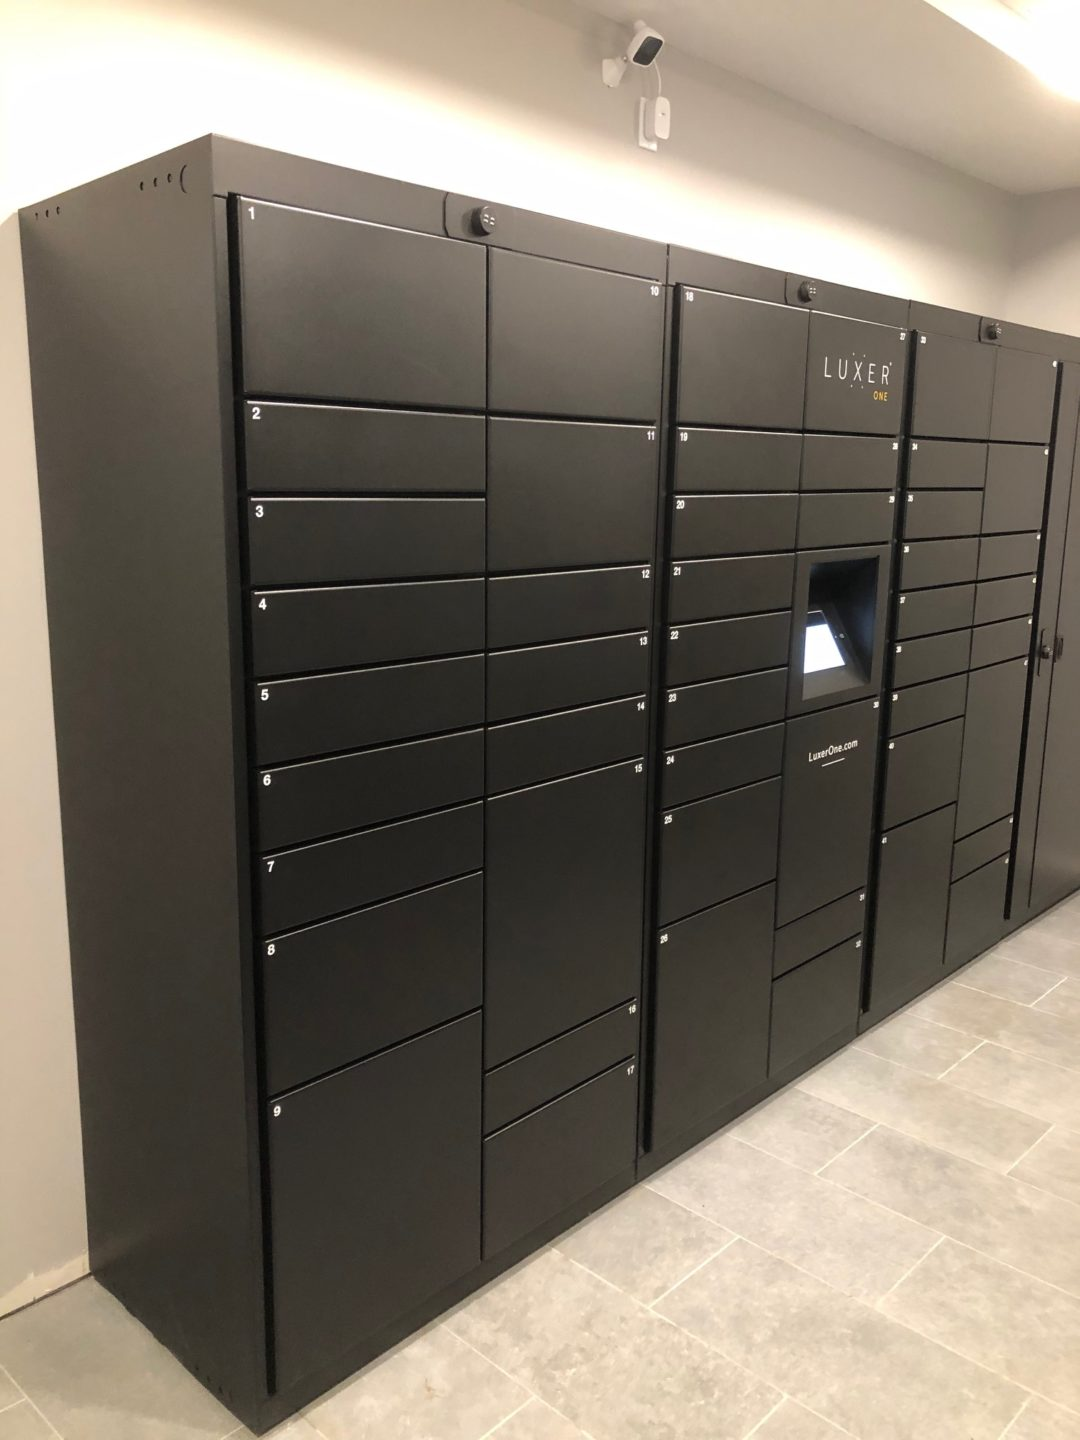 Lockourier smart lockers at Hintonburg Connection Ottawa Canada condo